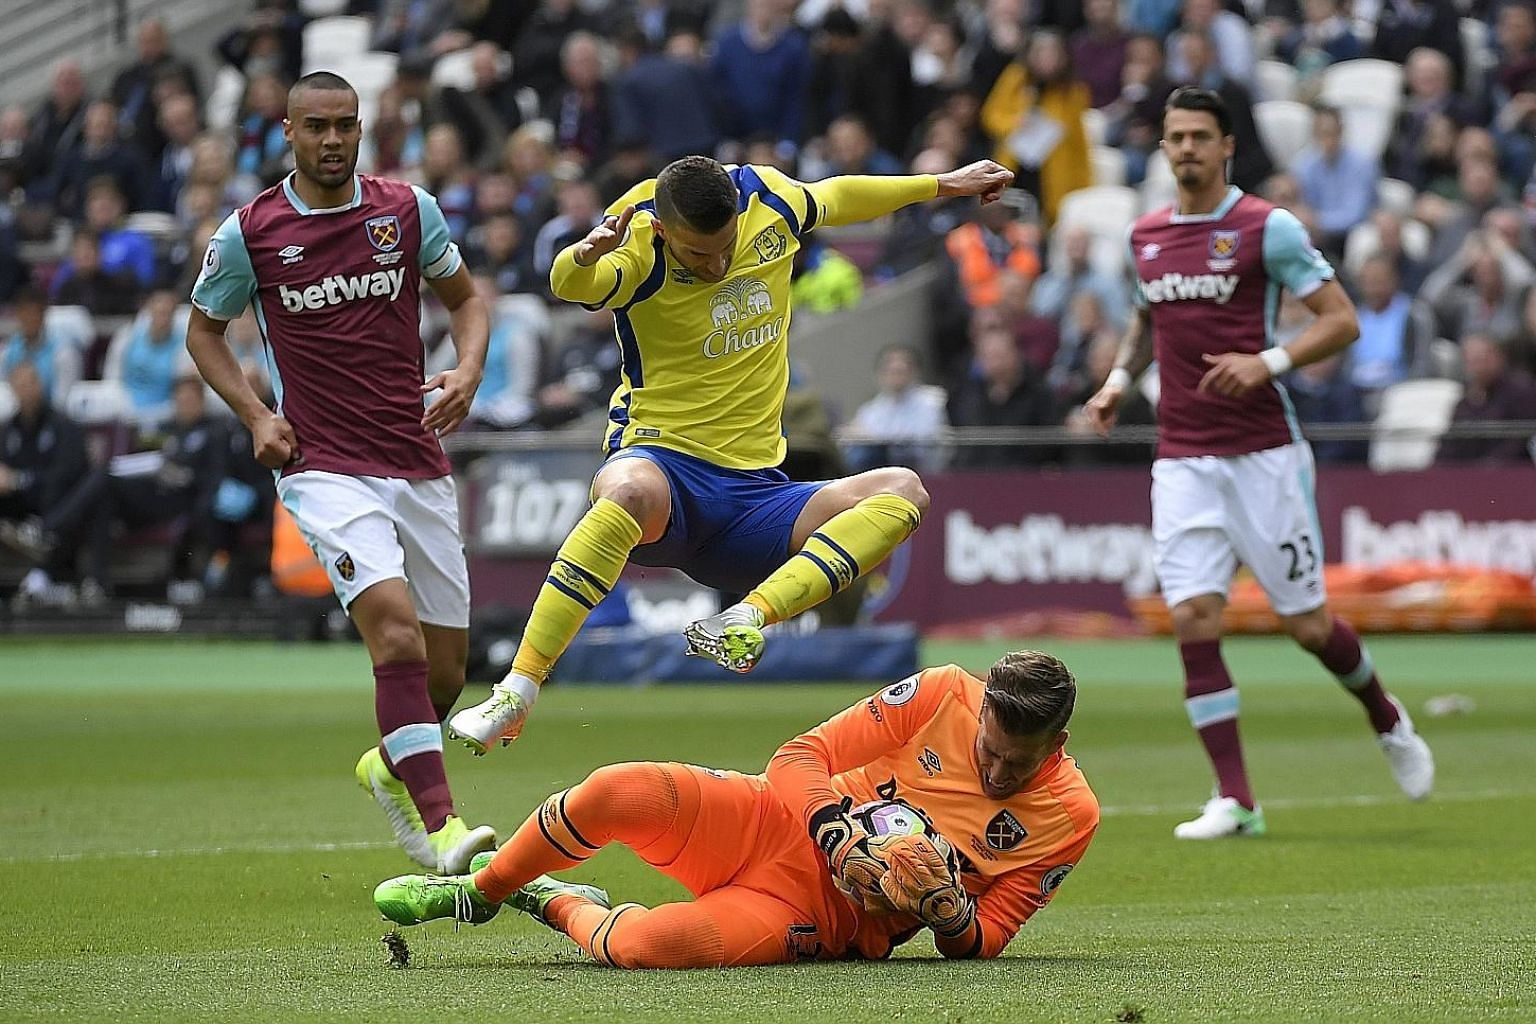 Everton's Kevin Mirallas leaps over West Ham goalkeeper Adrian as the latter makes a save. The Premier League match ended goalless, and puts a dampener on Everton's charge for a European spot.